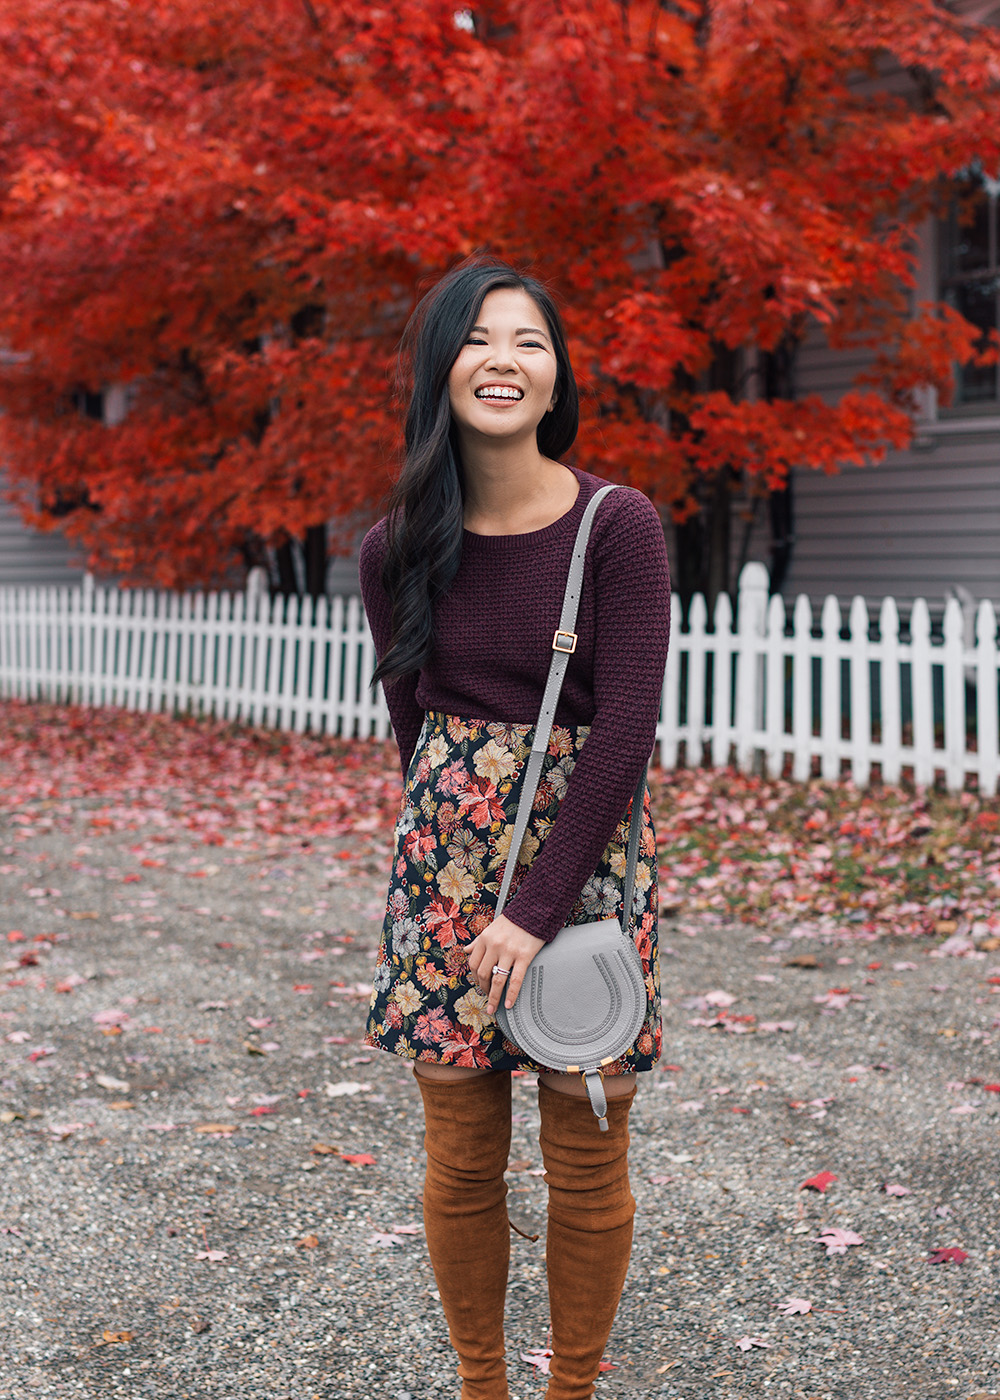 How to Wear Skirts in the Fall